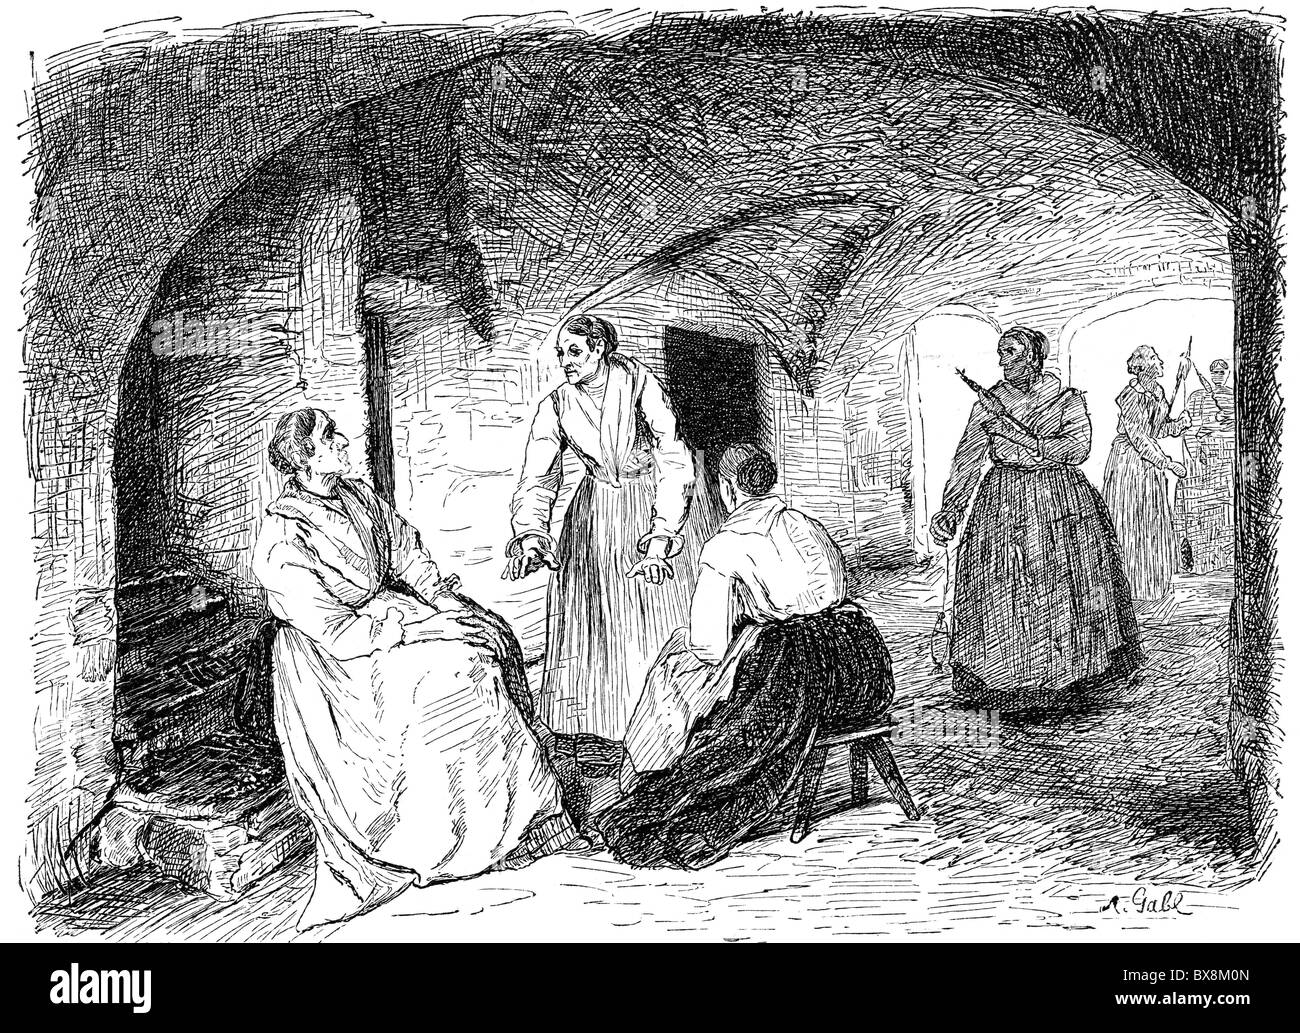 geography / travel, Italy, people, women in the vestibule of a stable telling stories and spinning, Val Redena, - Stock Image